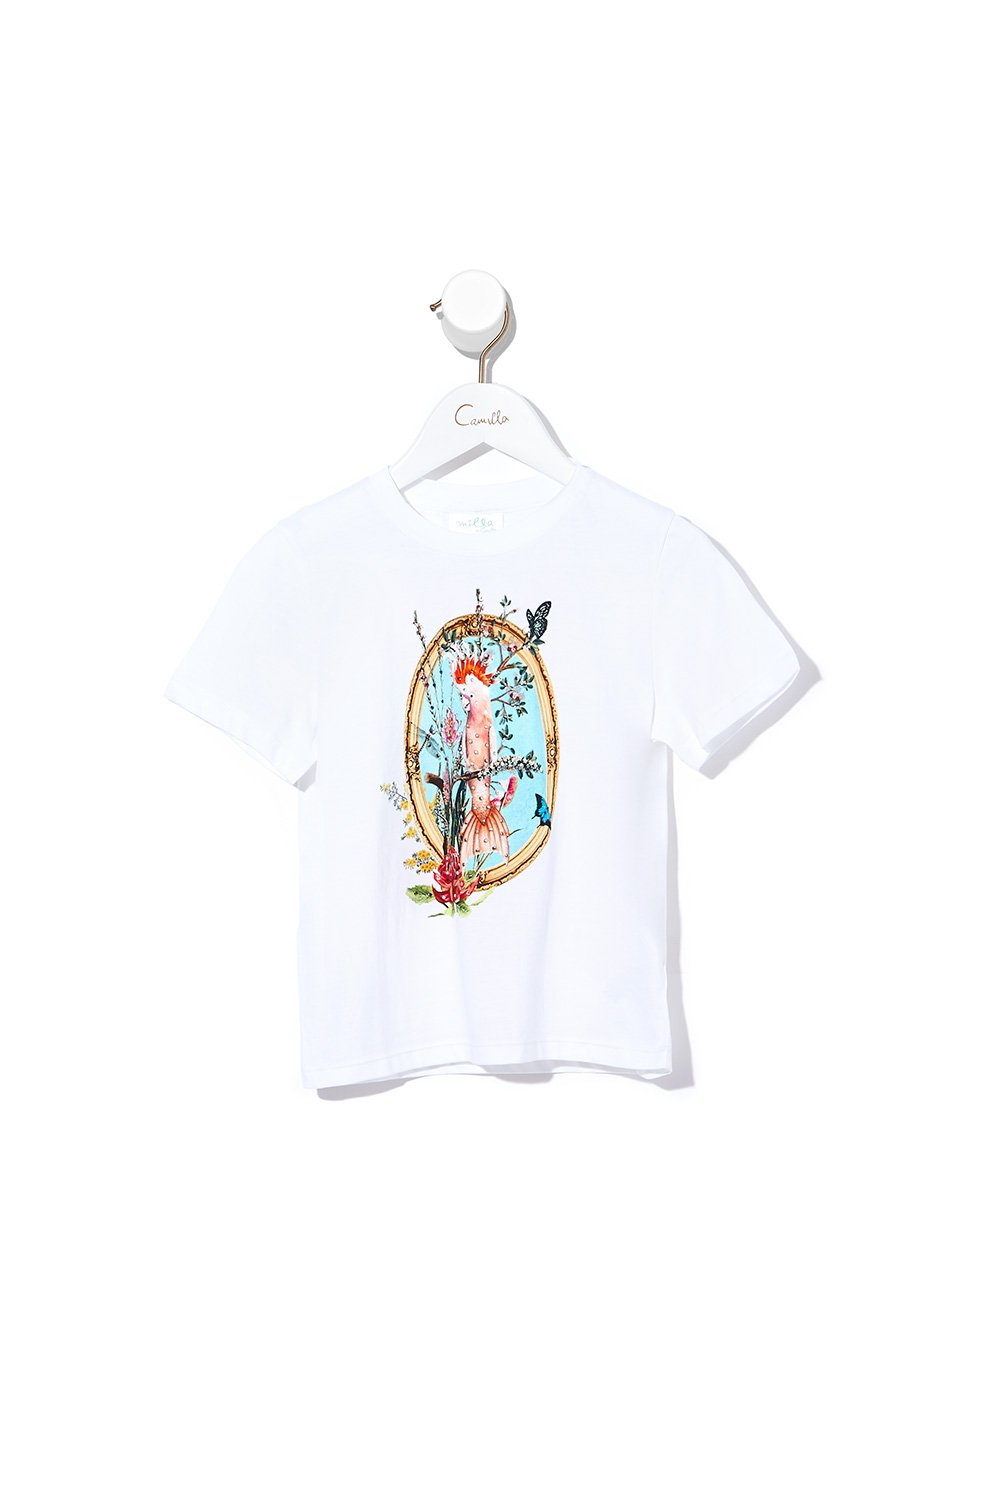 INFANTS SHORT SLEEVE T-SHIRT KINDRED SKIES